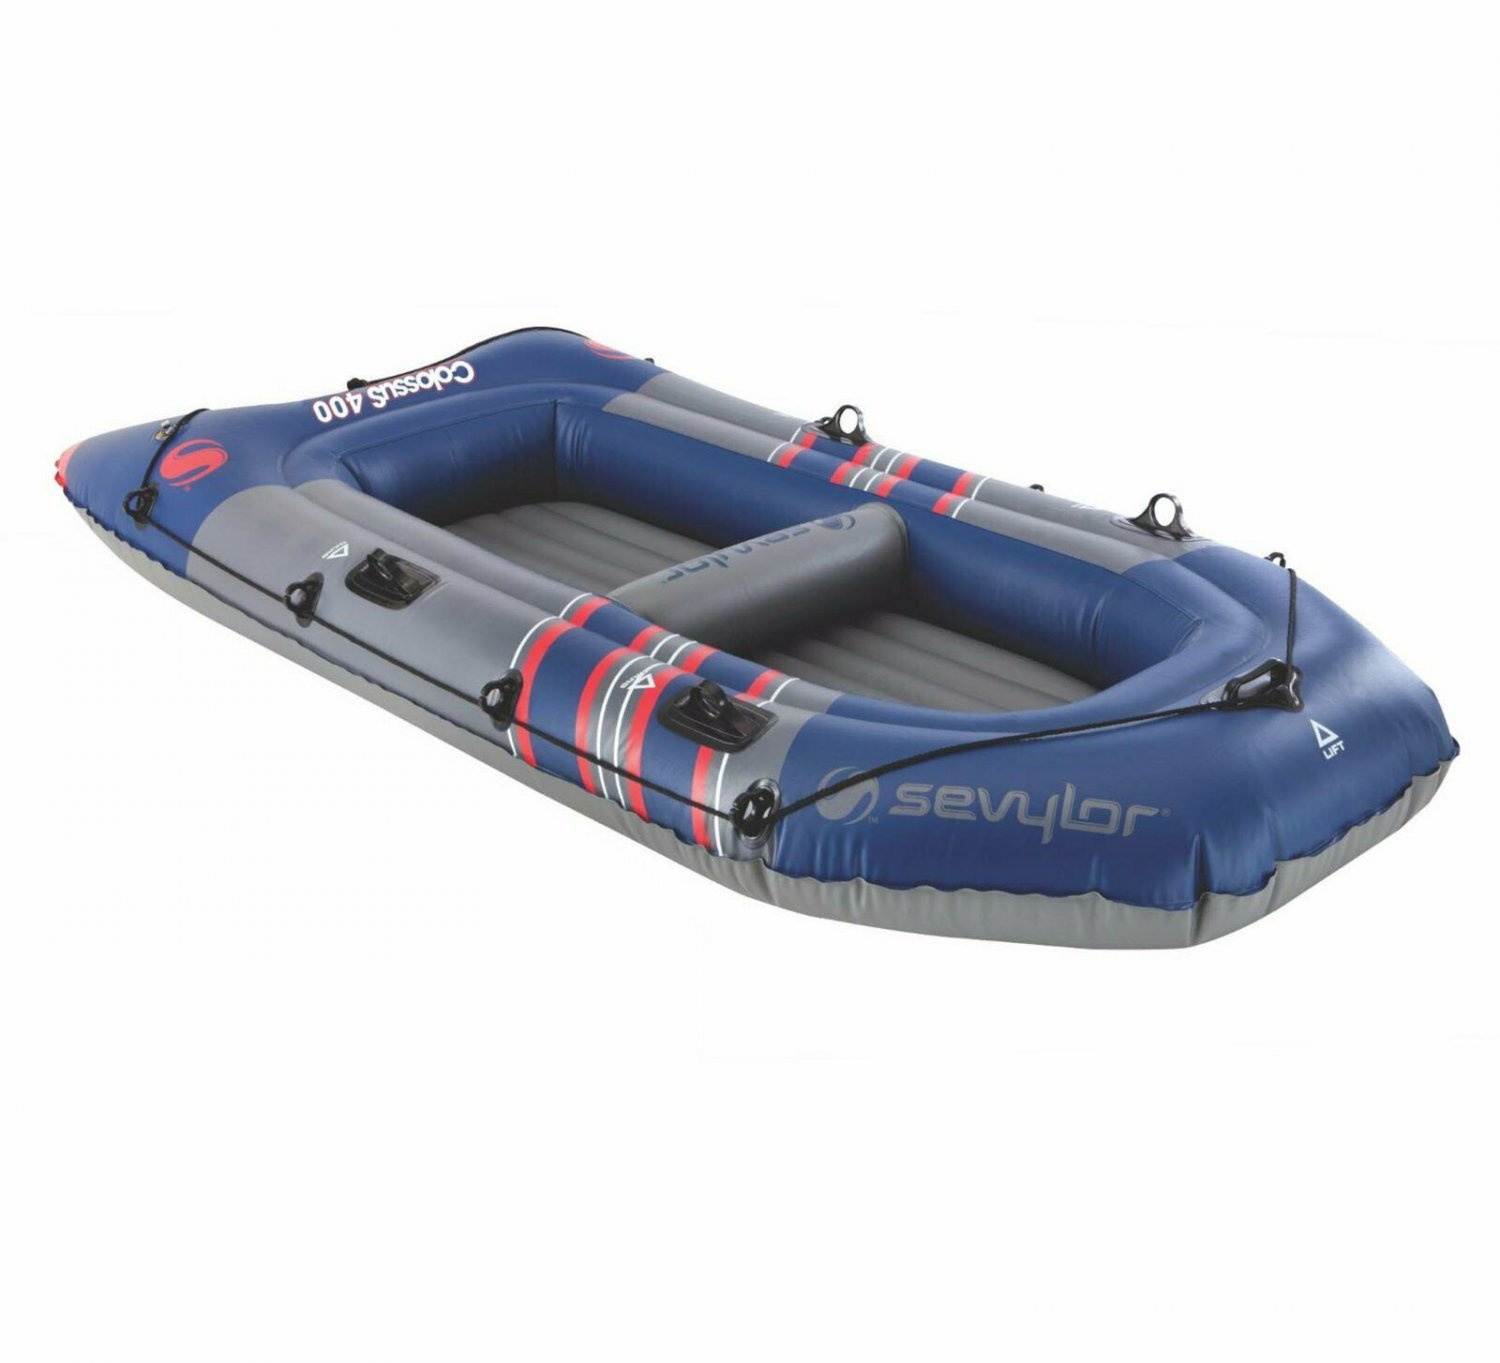 4-Person Inflatable Boat river lake sports fishing recreational Lightweight